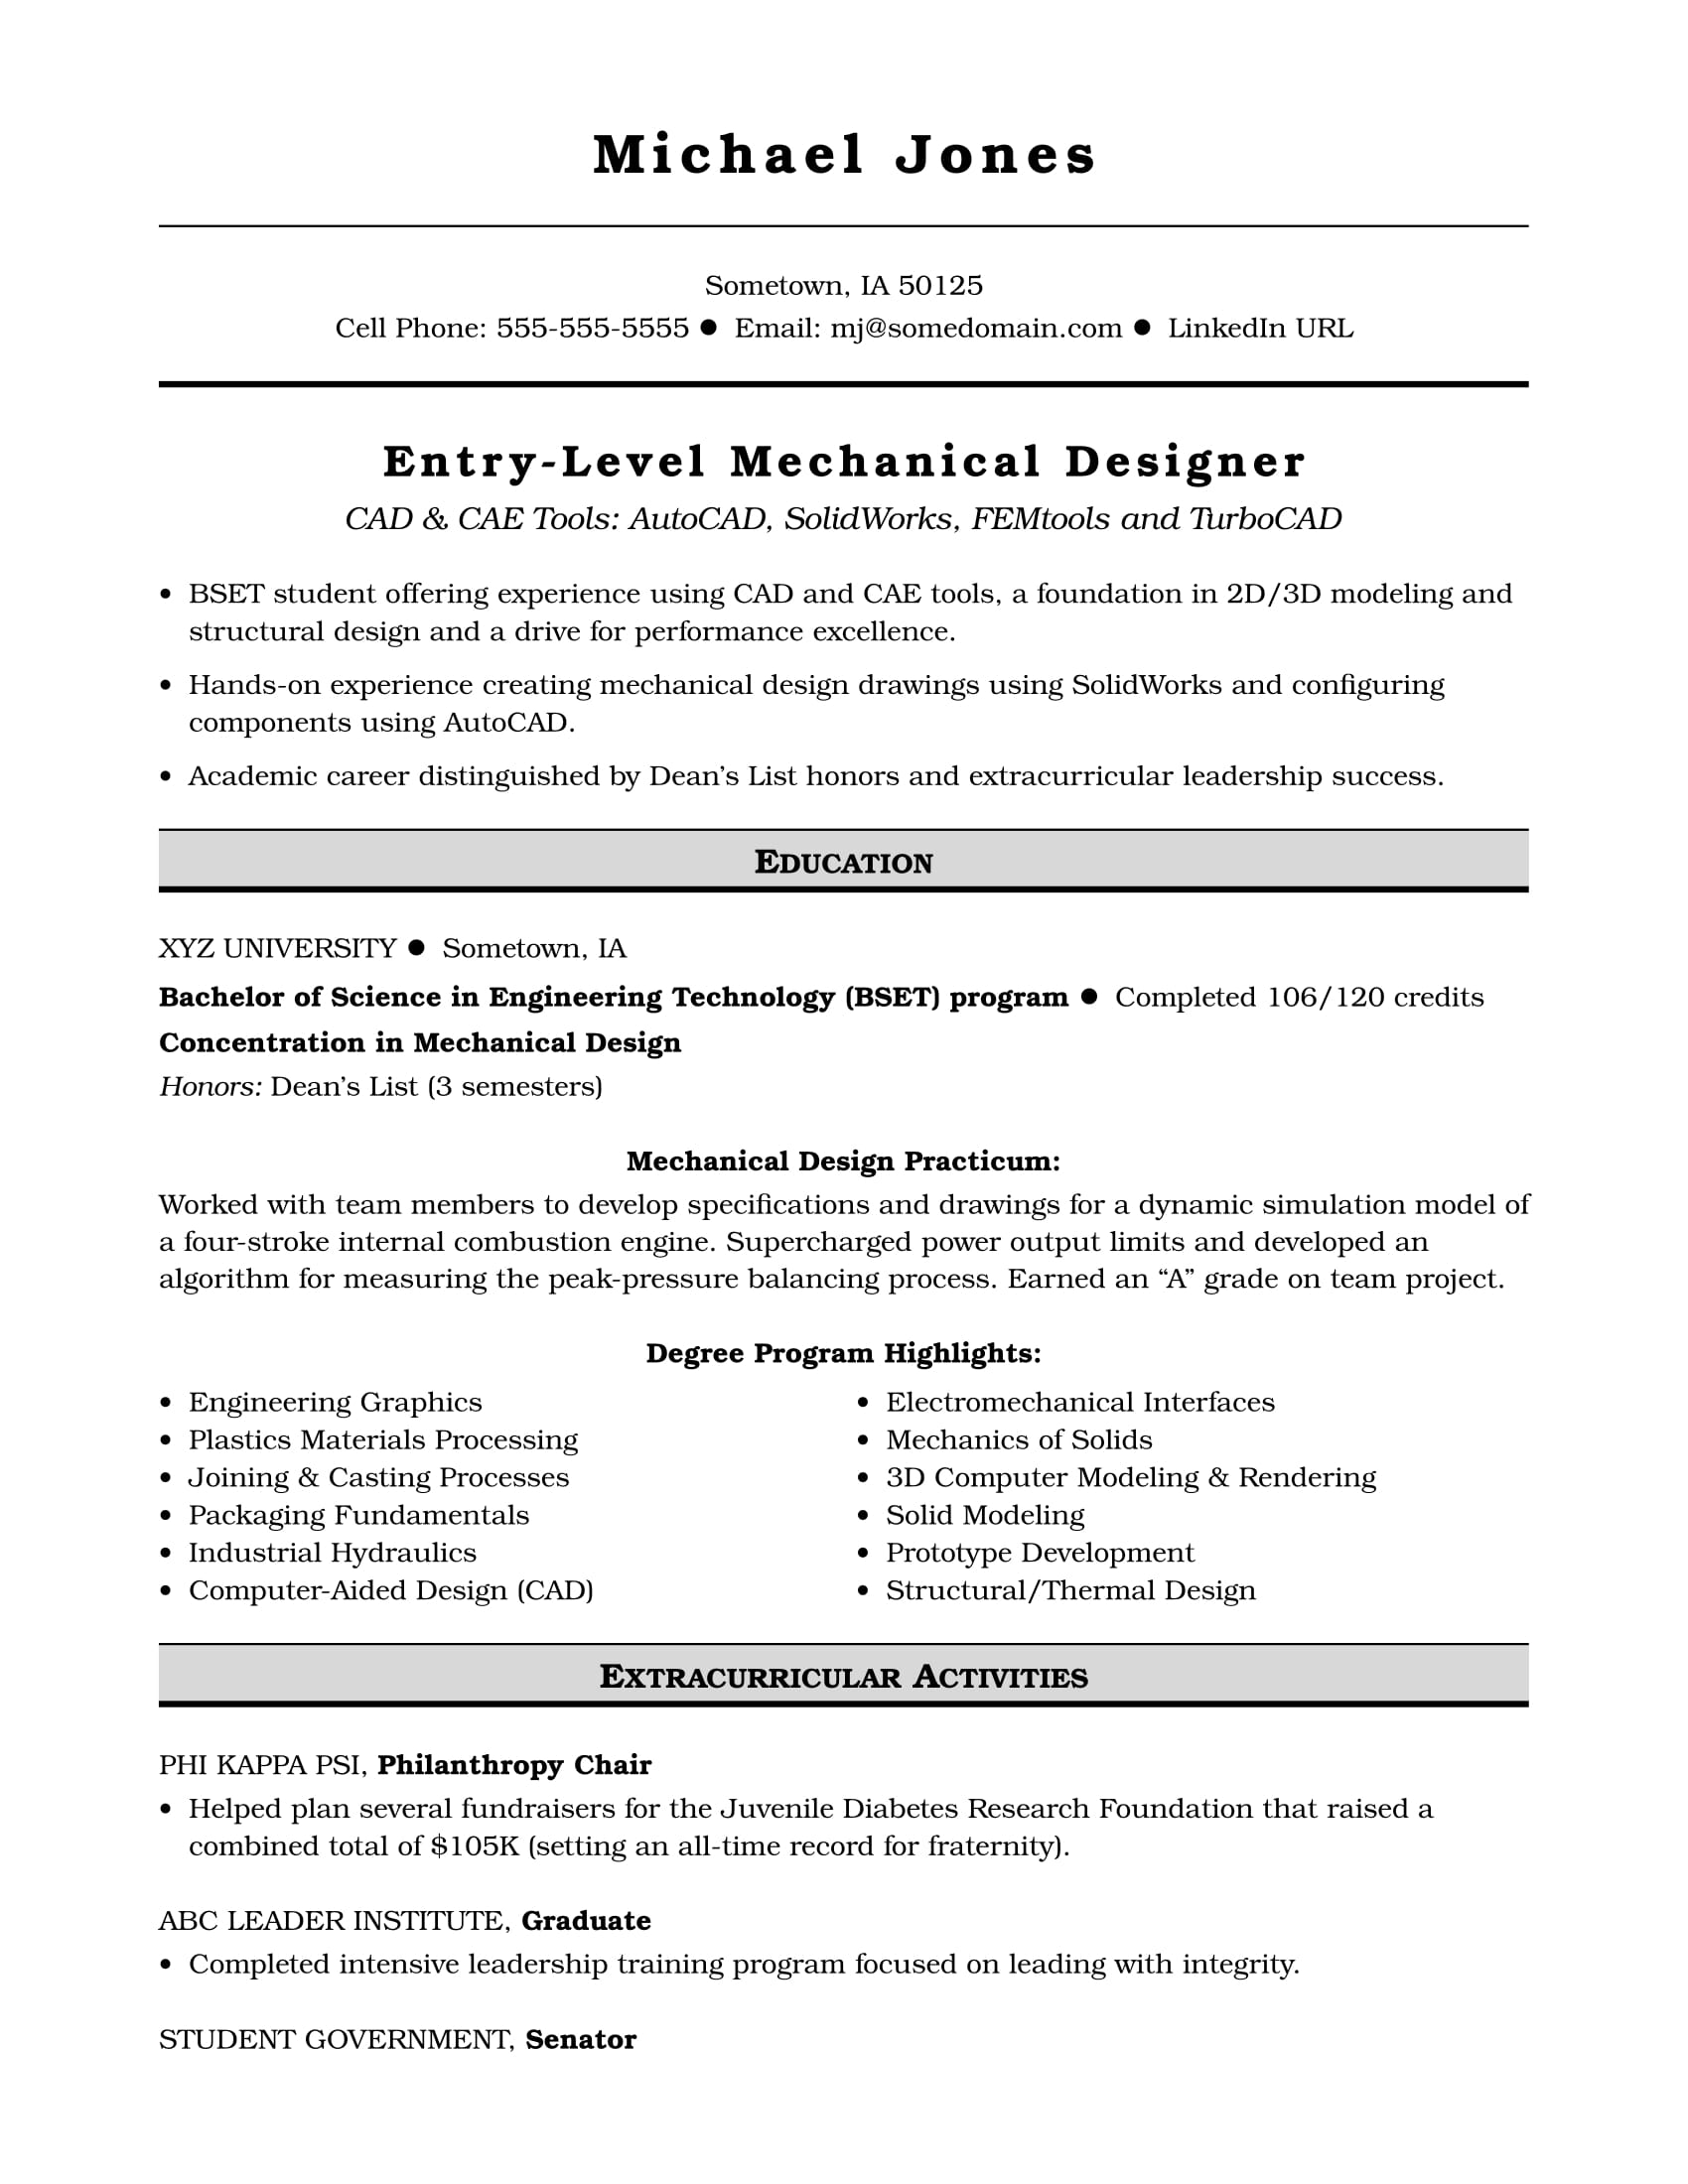 sample resume for an entry level mechanical designer monster autocad template medical Resume Autocad Resume Template